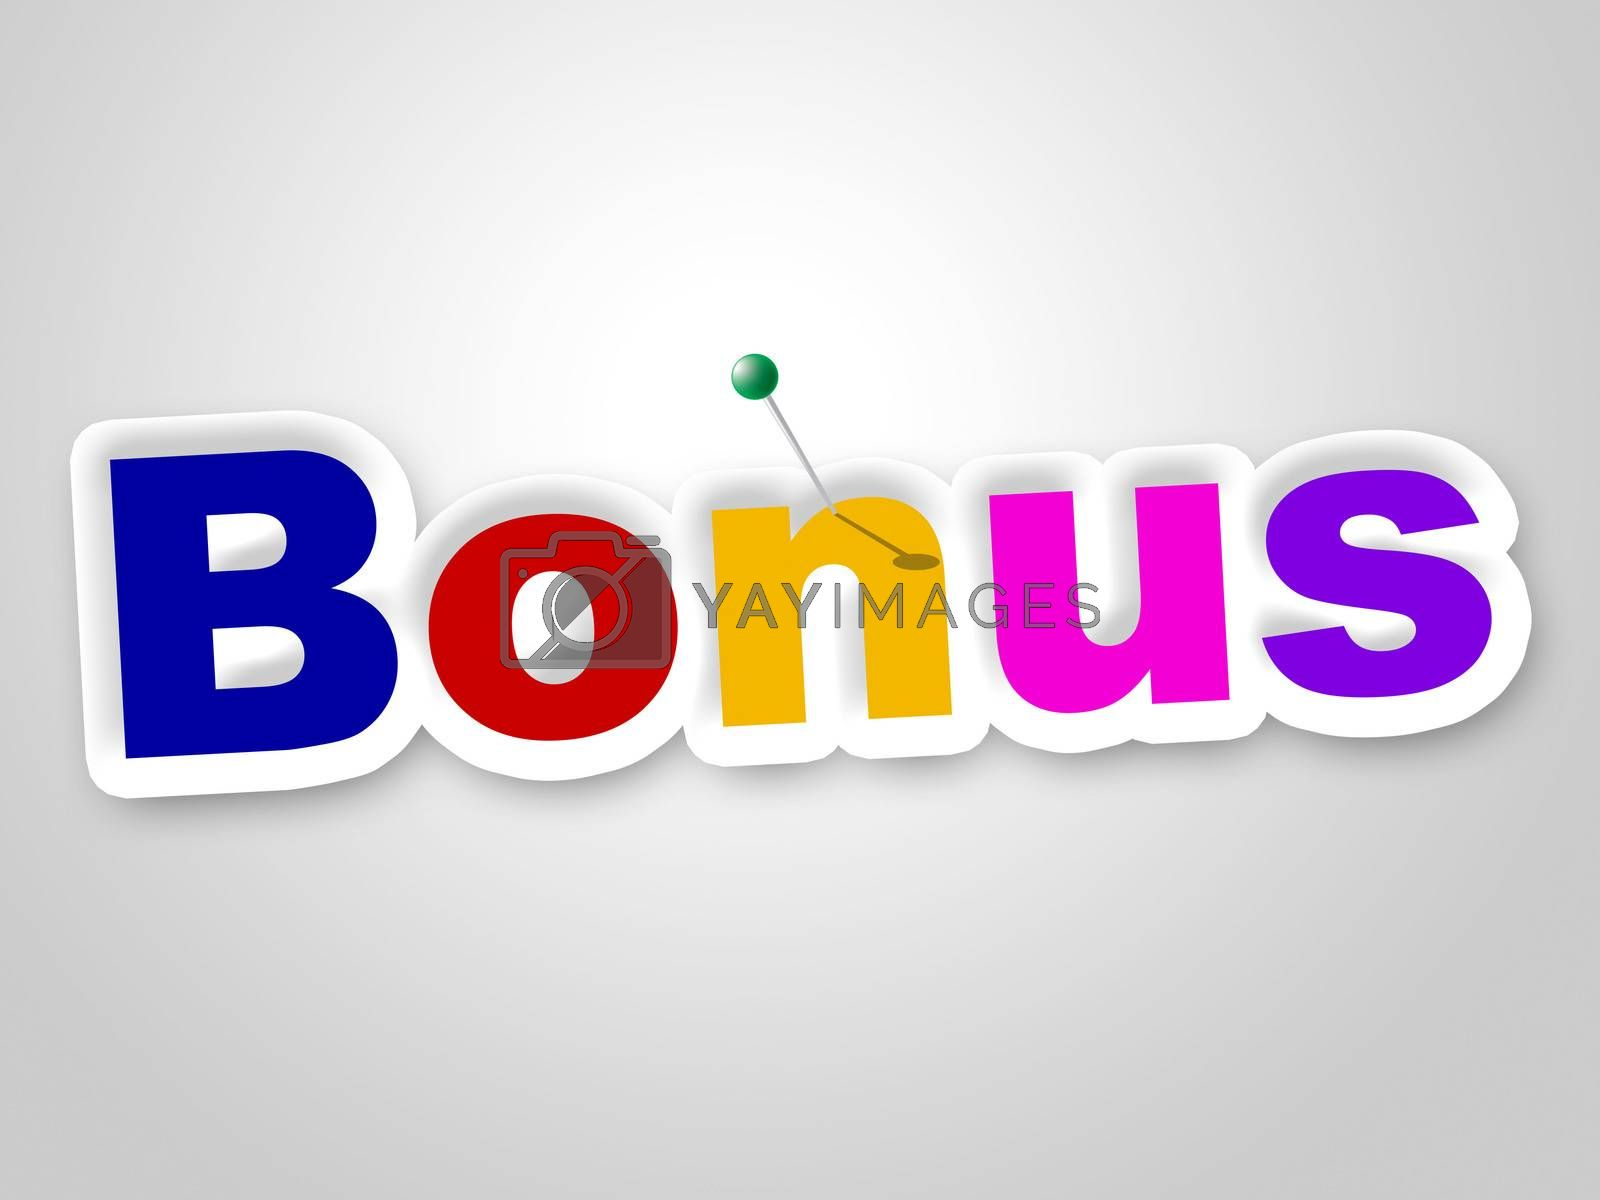 Bonus Sign Shows For Free And Added by stuartmiles